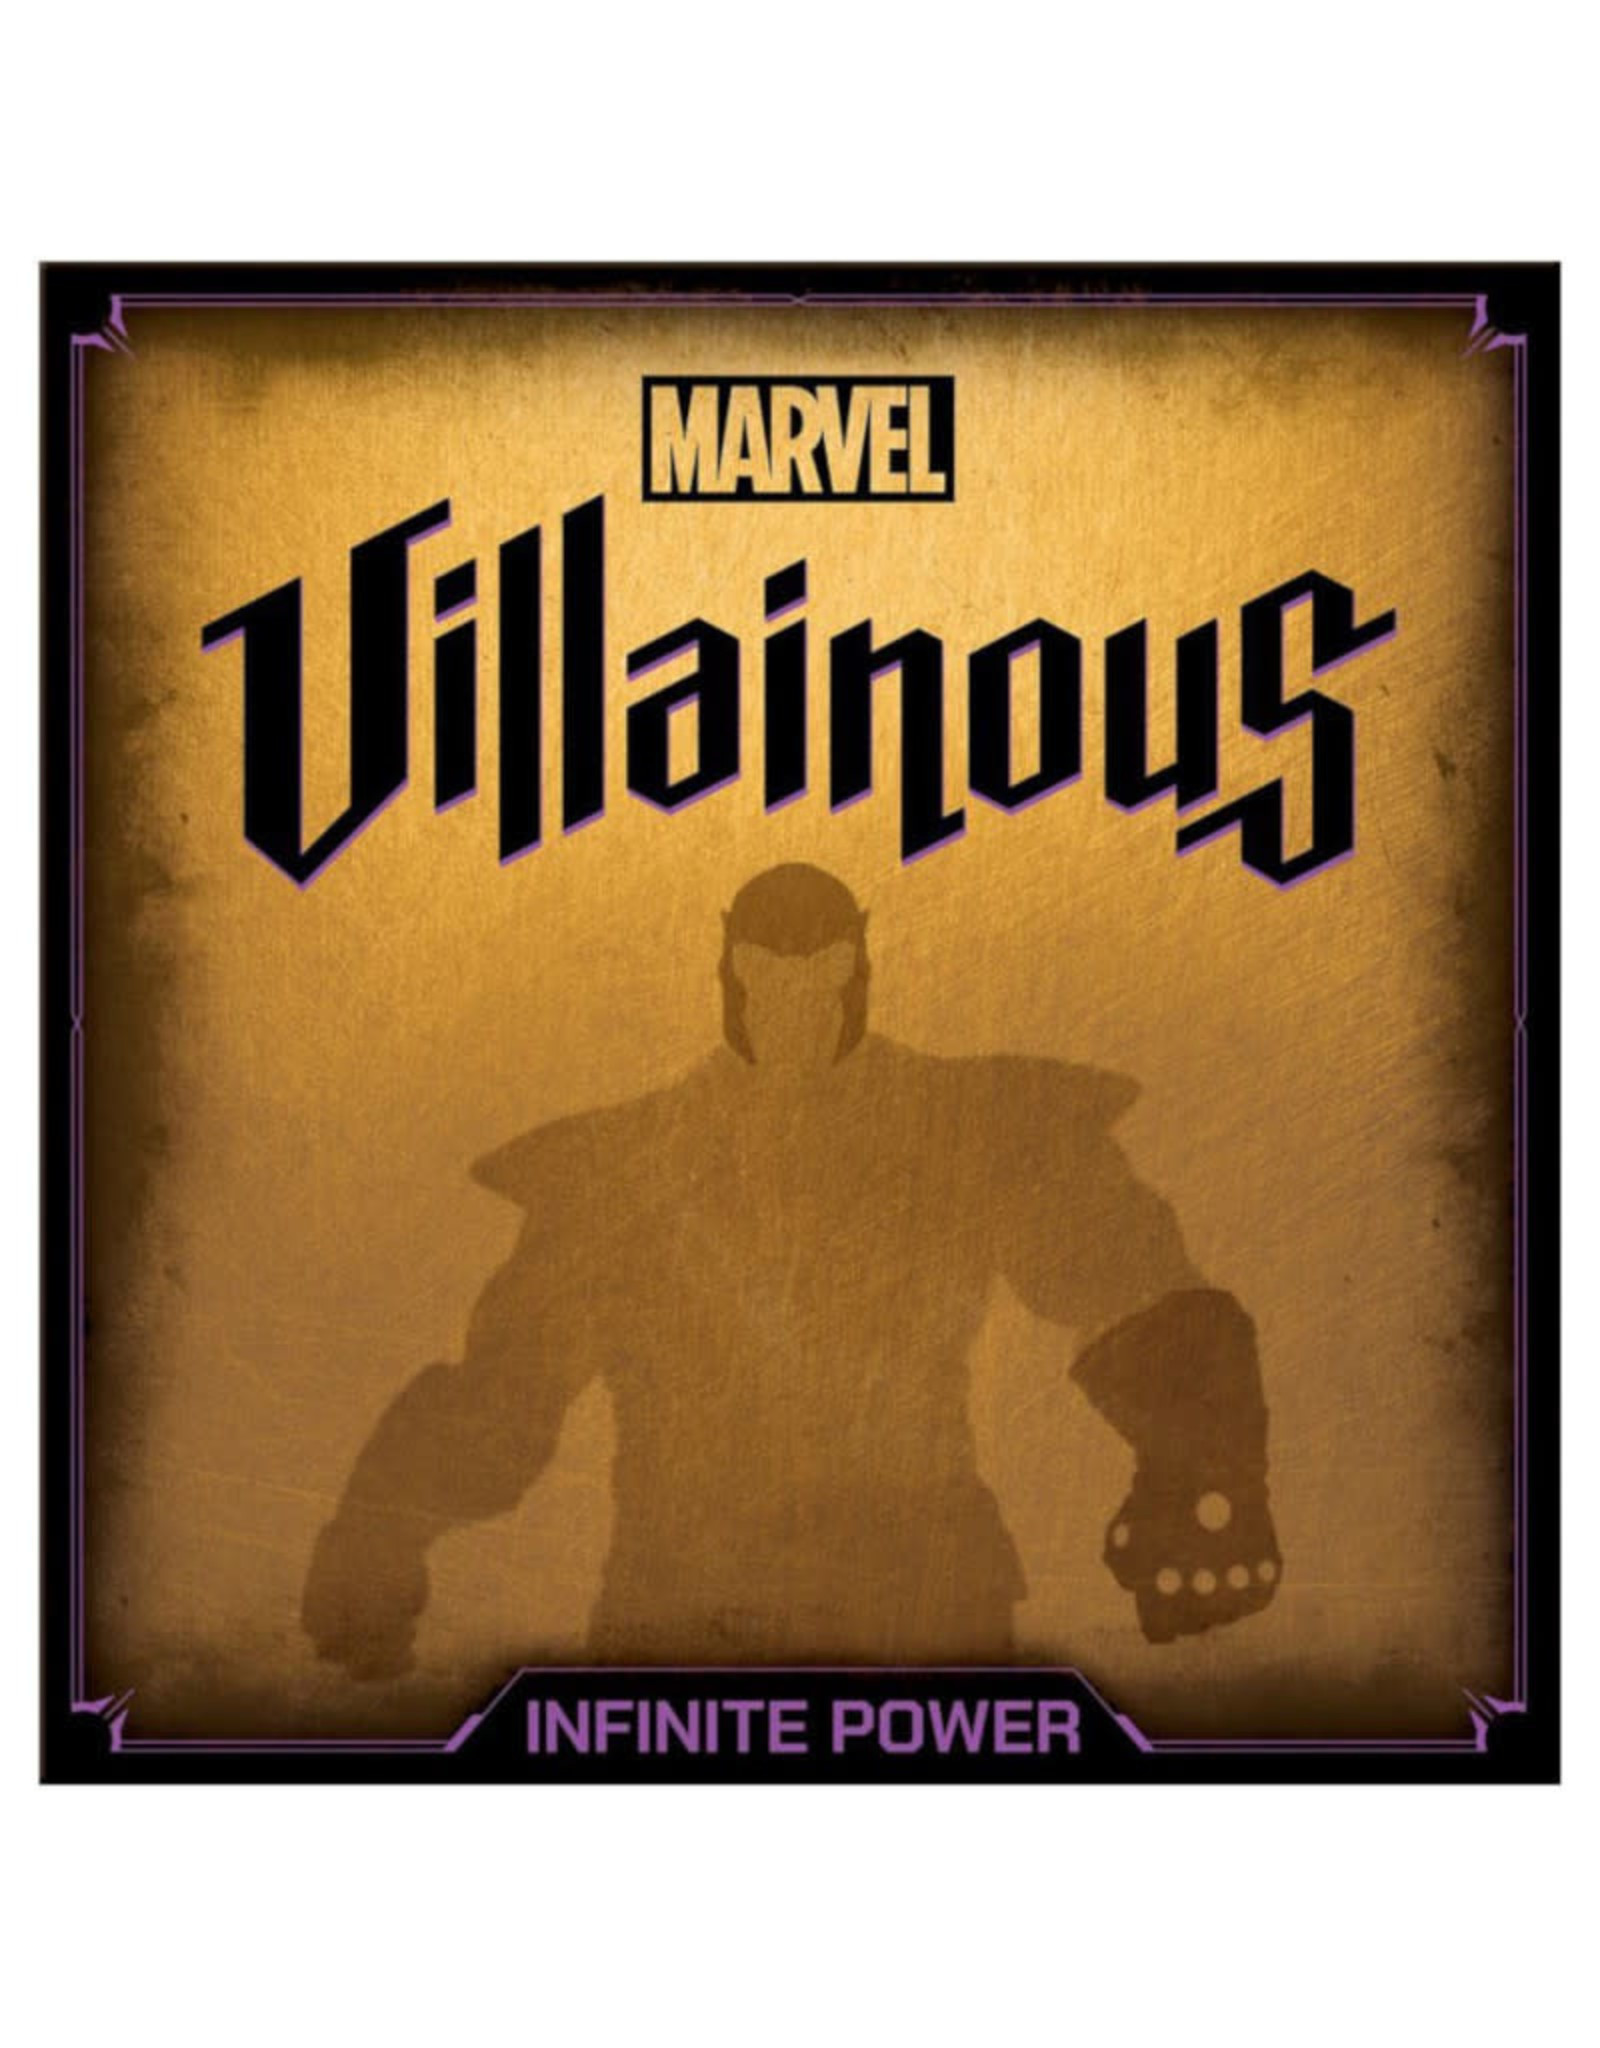 Ravensburger Disney Villainous Marvel Infinite Power